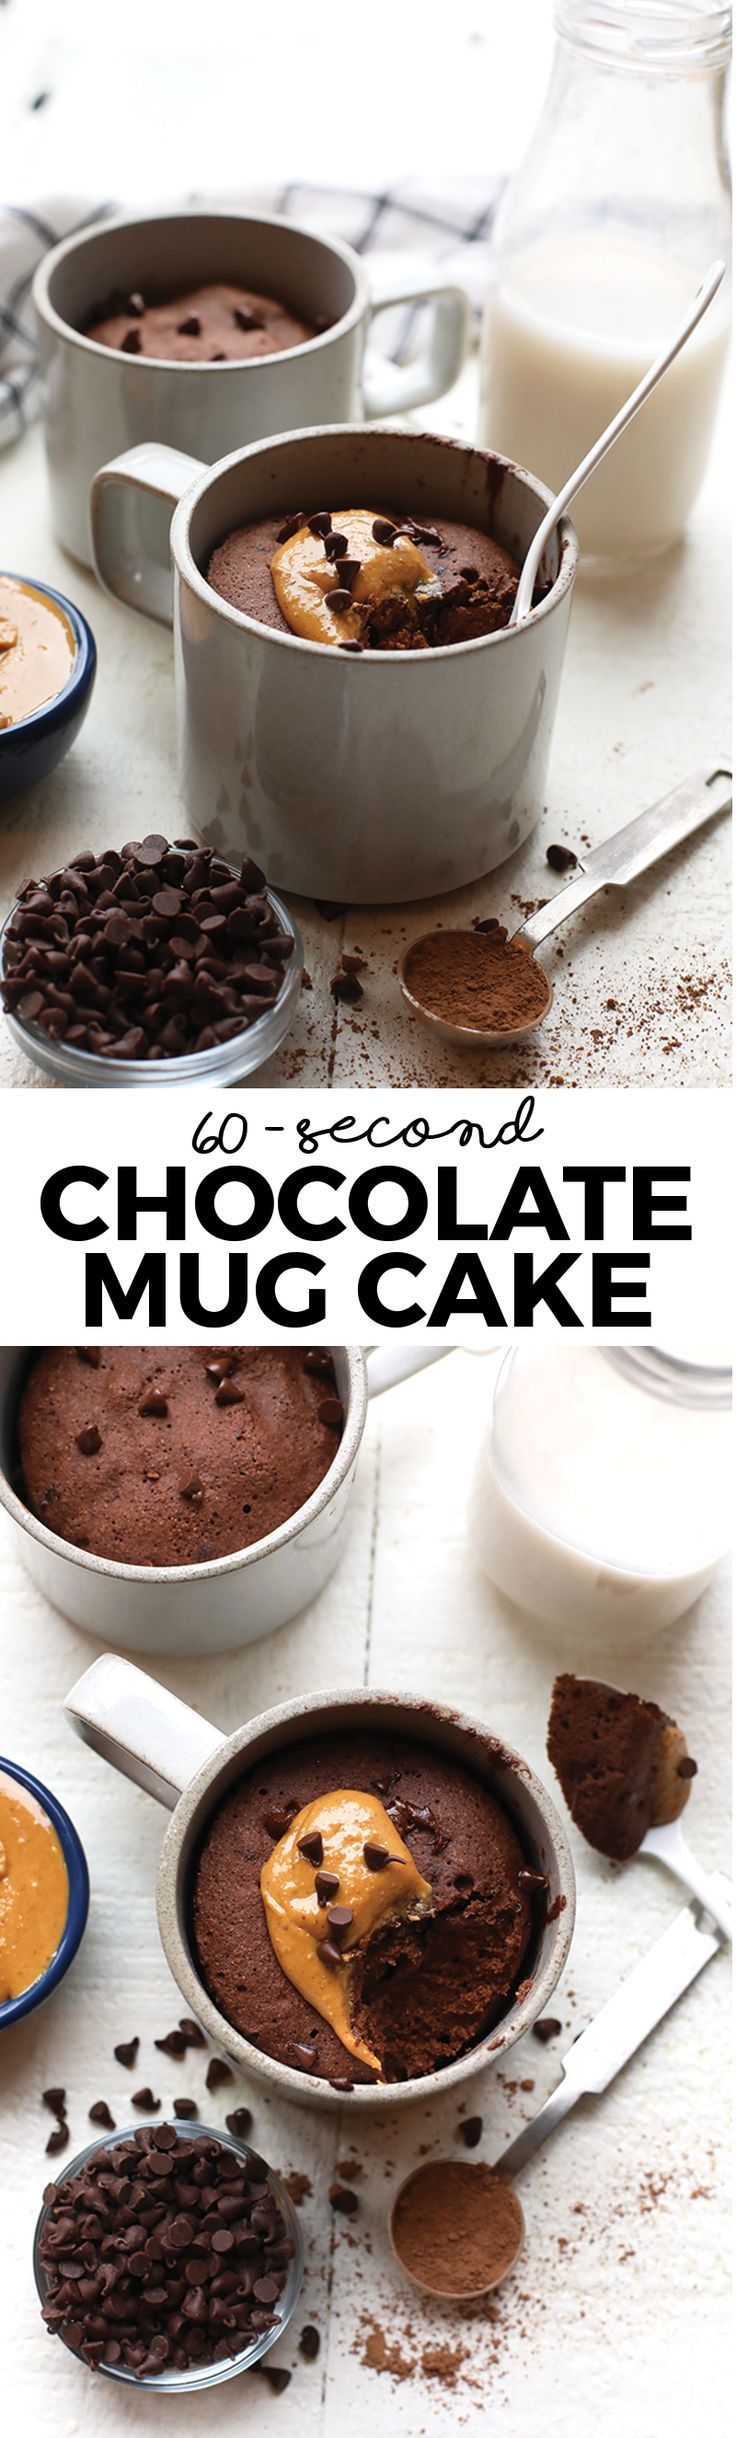 This single serve healthy chocolate mug cake is naturally sweetened and made with whole grains for an easy homemade treat!